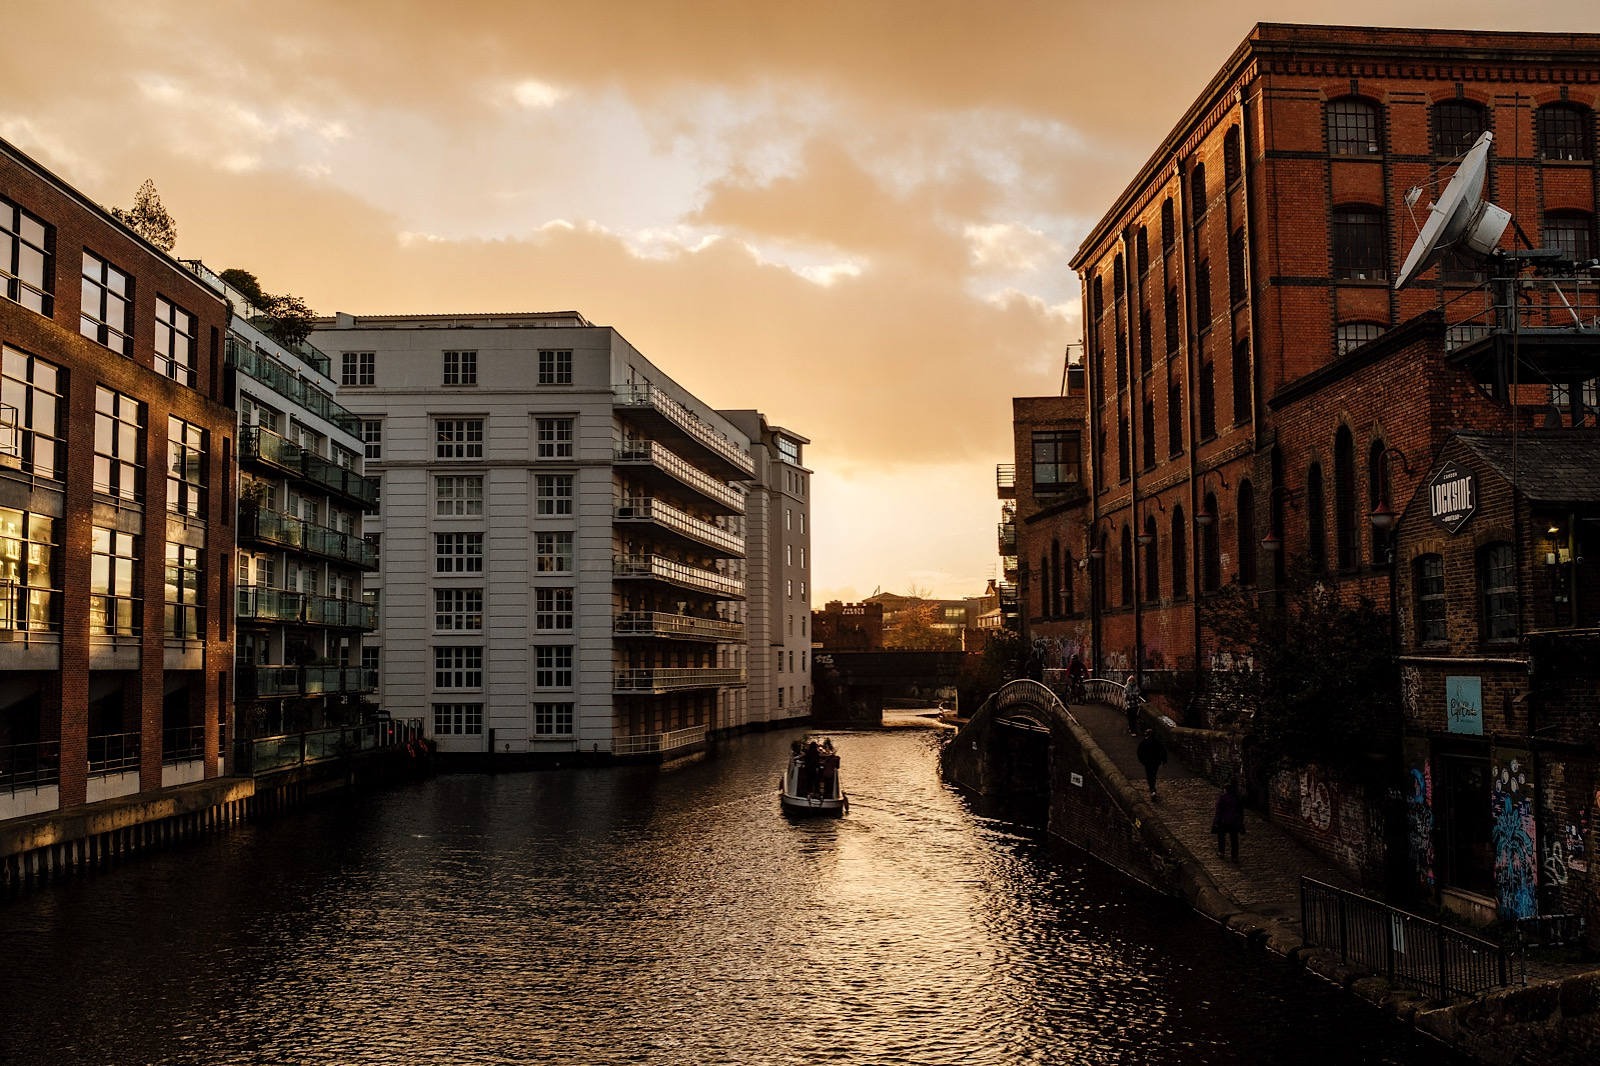 View of buildings in canal lockside sunset scene in London